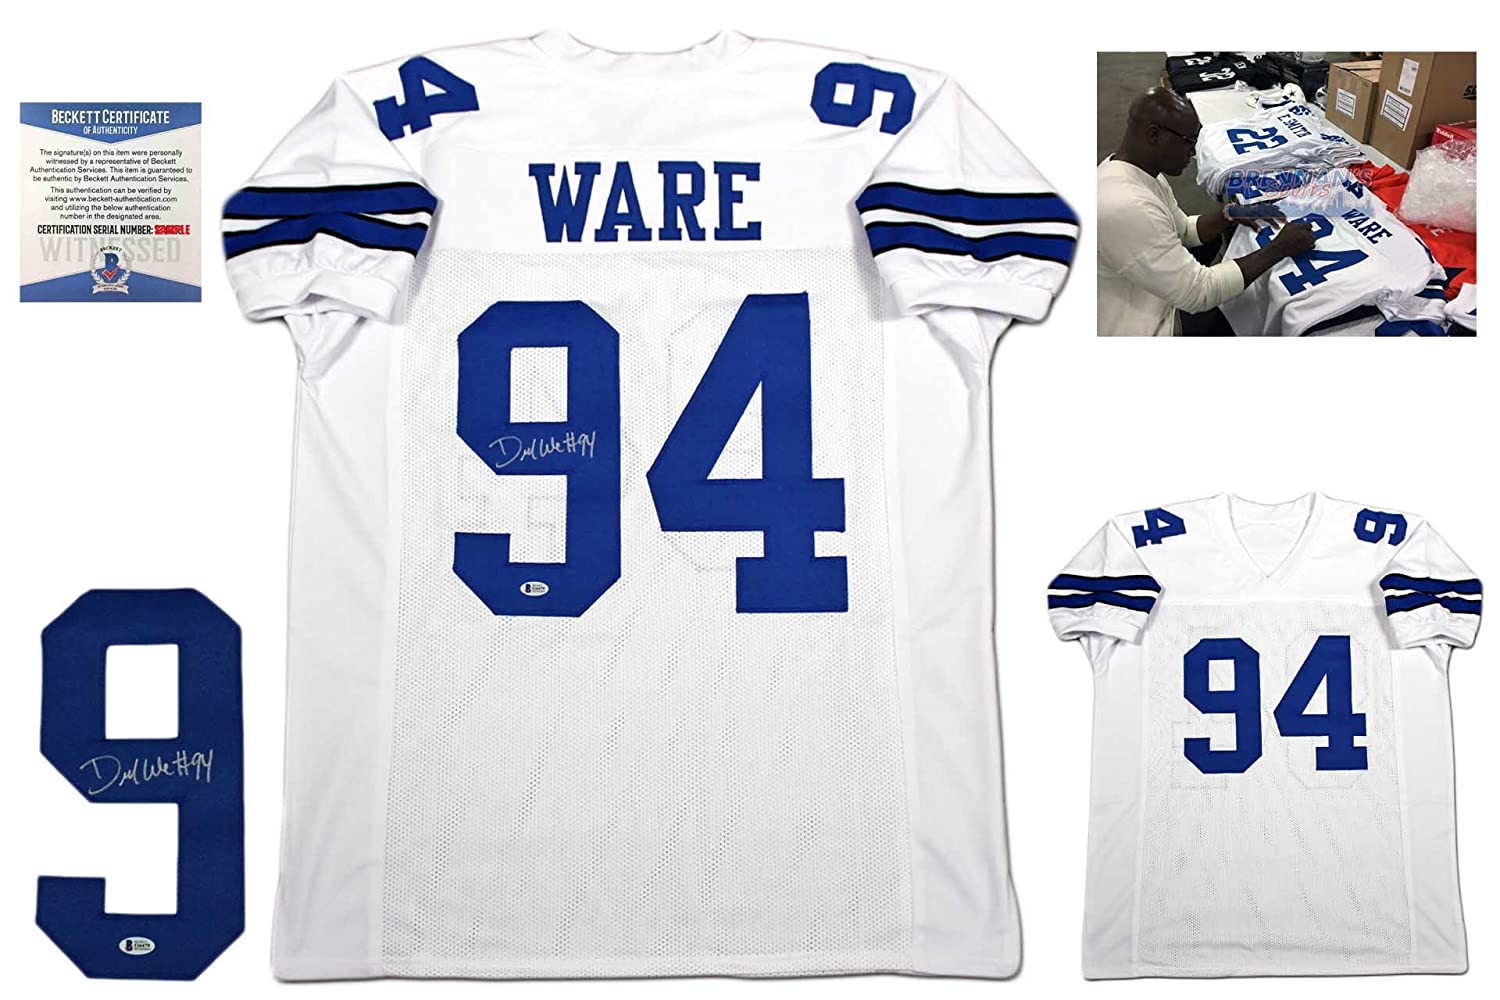 new concept 42ab5 b563c Demarcus Ware Autographed Signed Jersey - Beckett Authentic ...